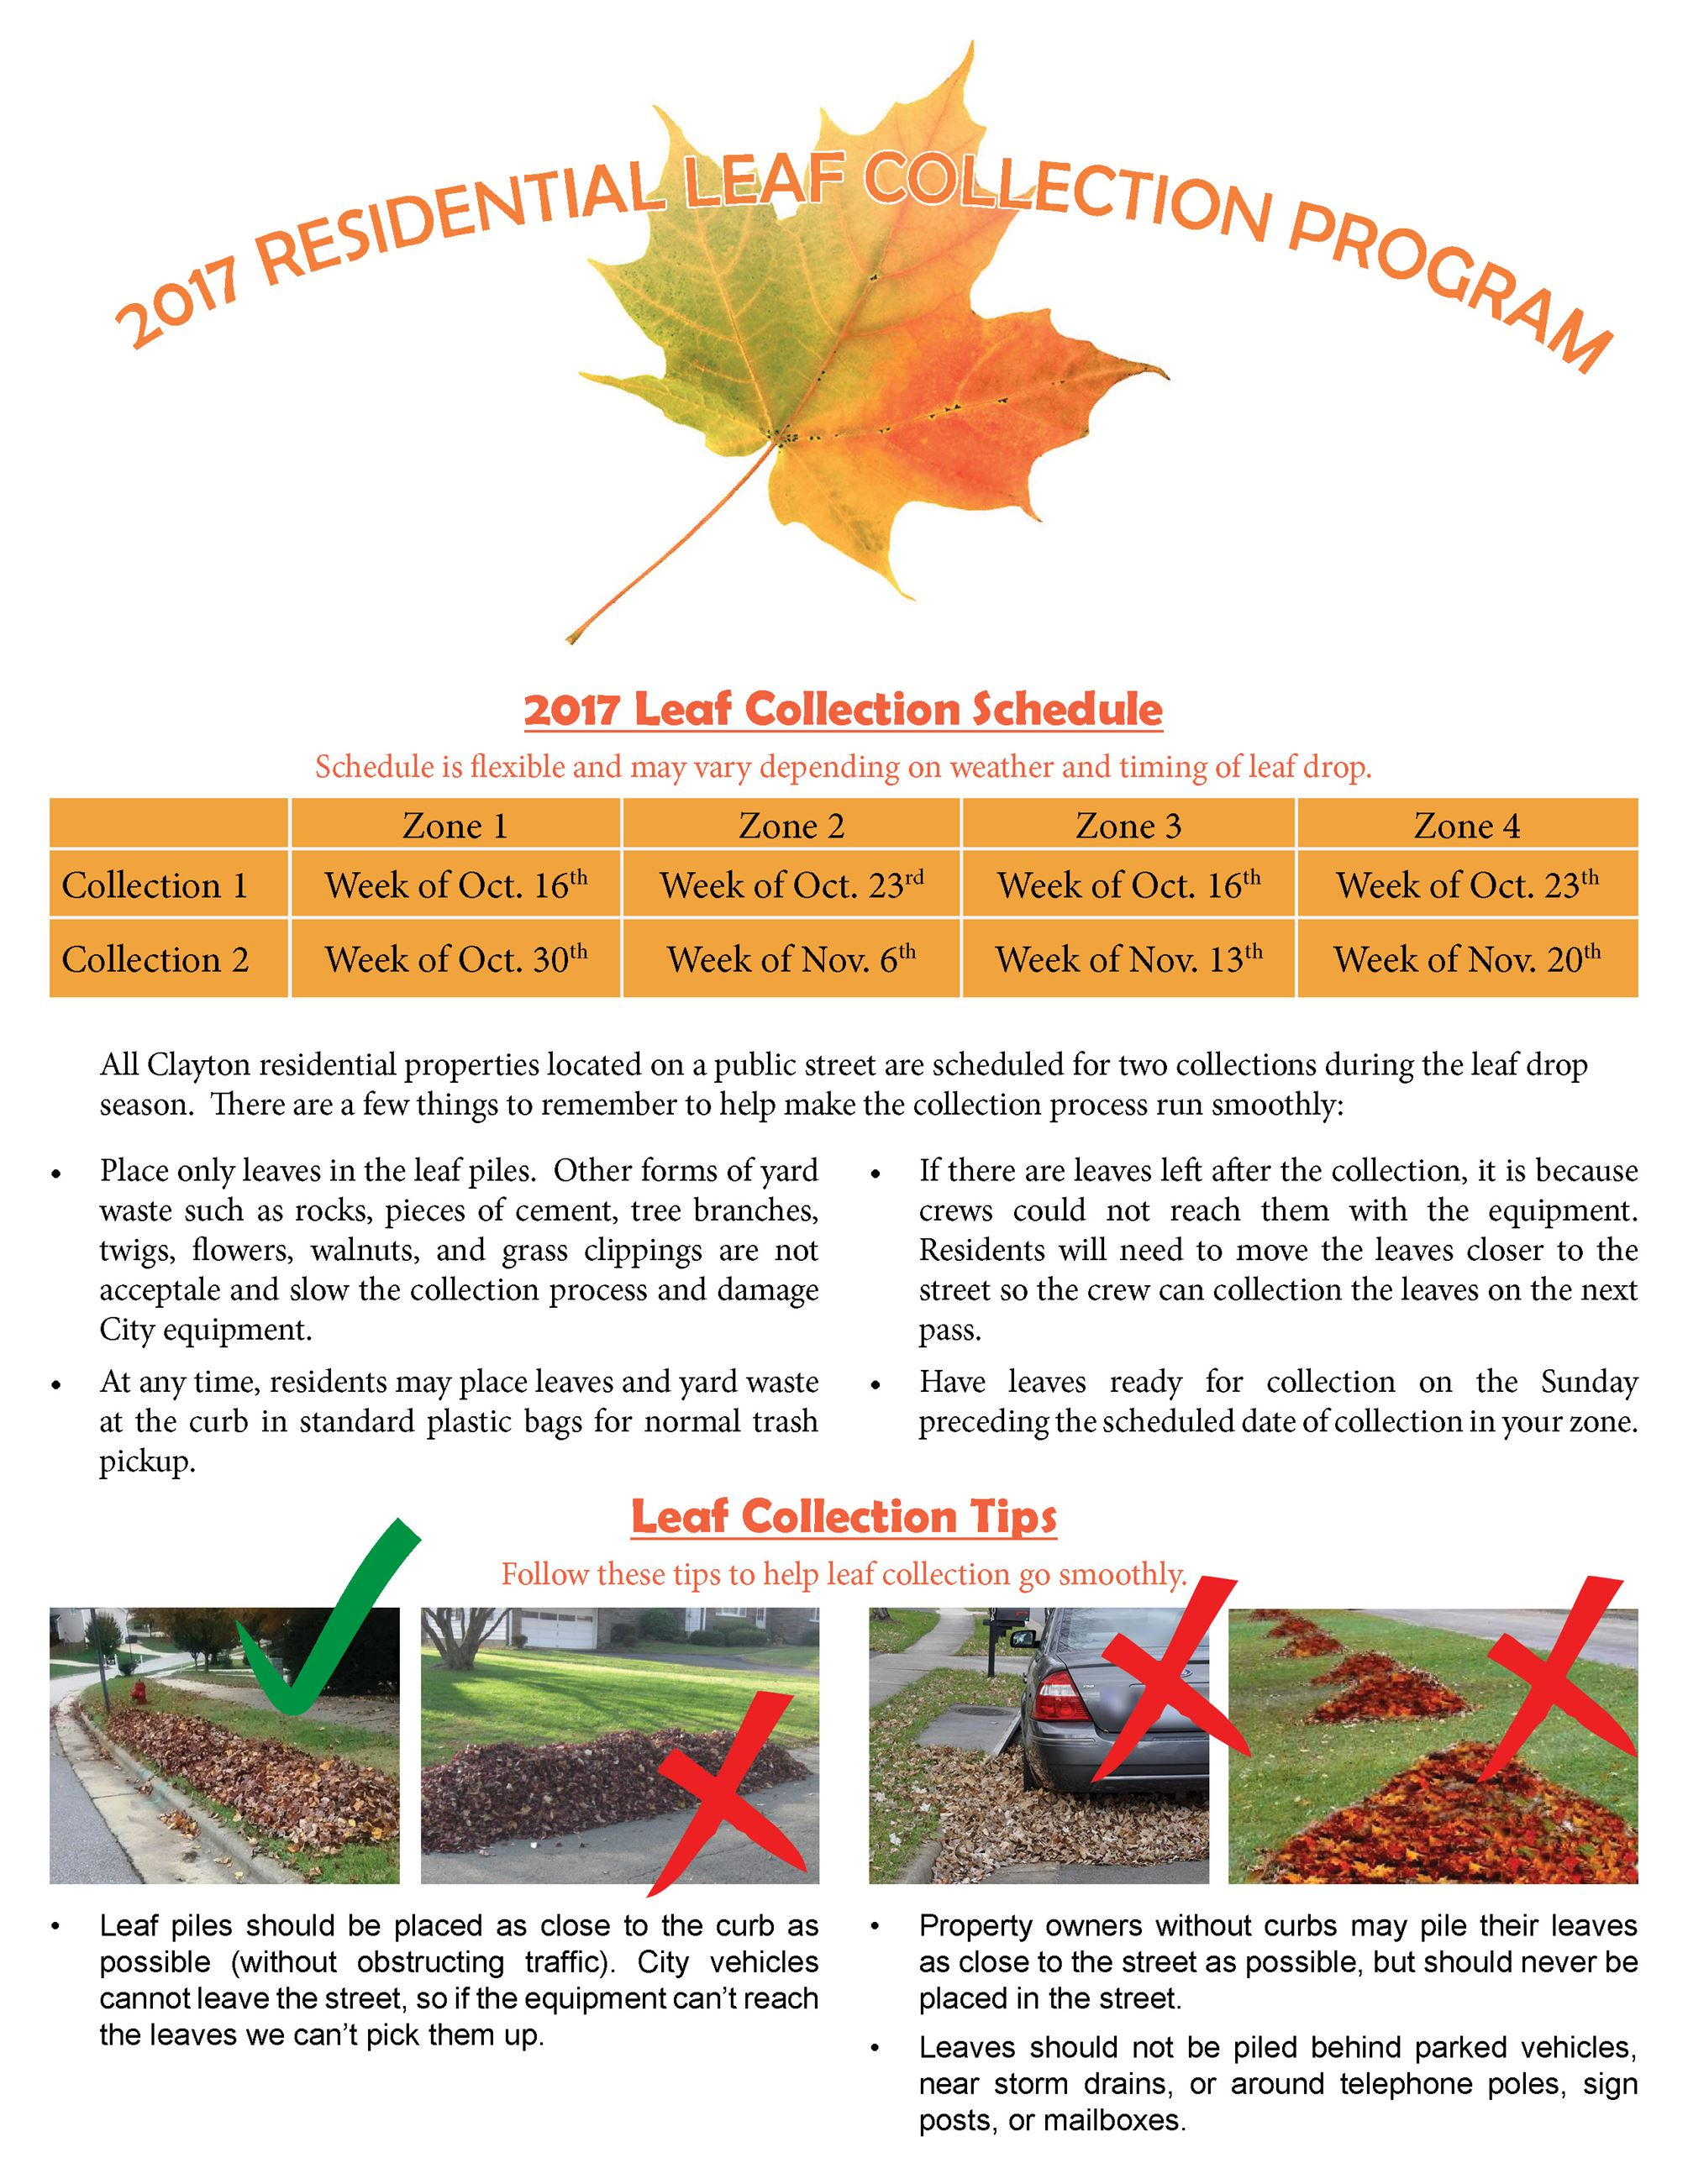 Leaf collection flyer